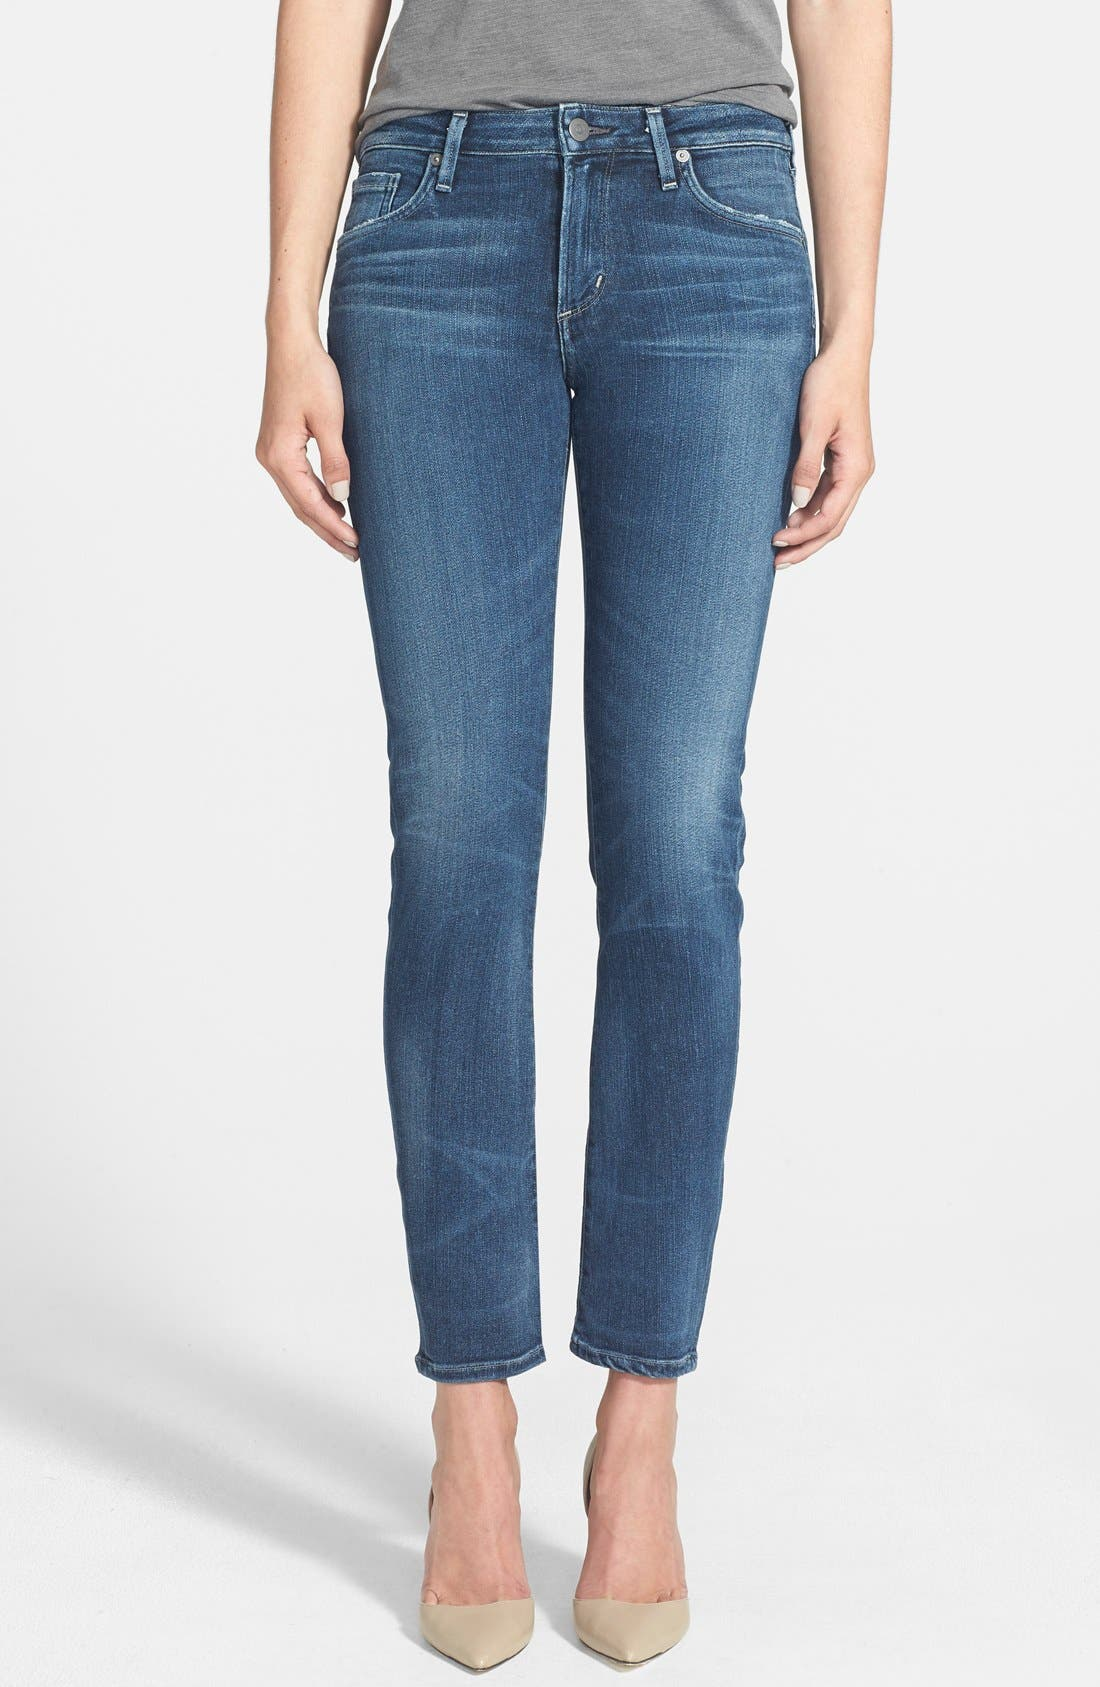 Alternate Image 1 Selected - Citizens of Humanity 'Arielle' Mid Rise Skinny Jeans (Hewett) (Petite)